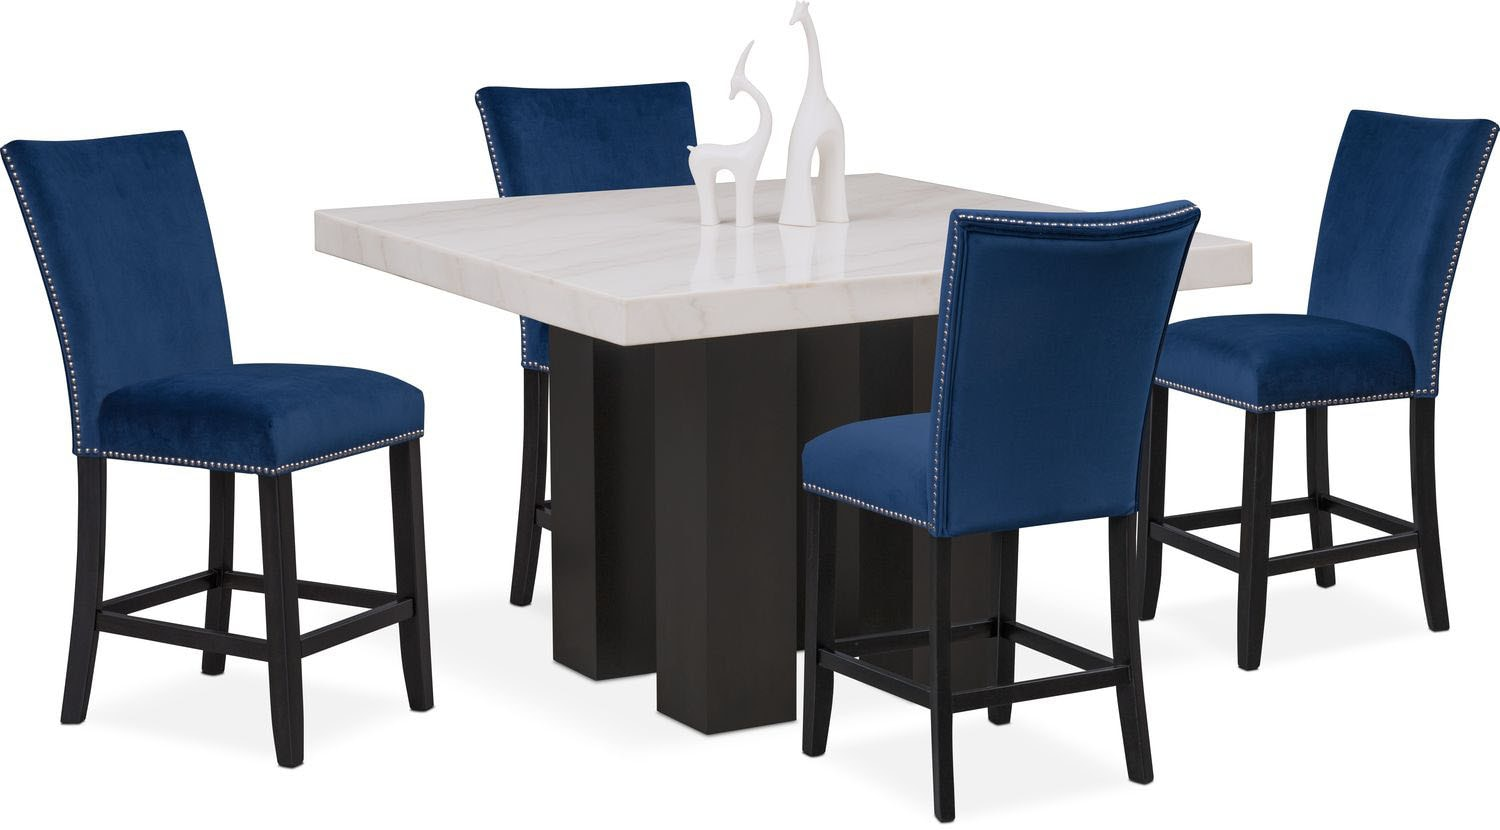 Artemis Counter Height Dining Table And 4 Upholstered Stools   Blue